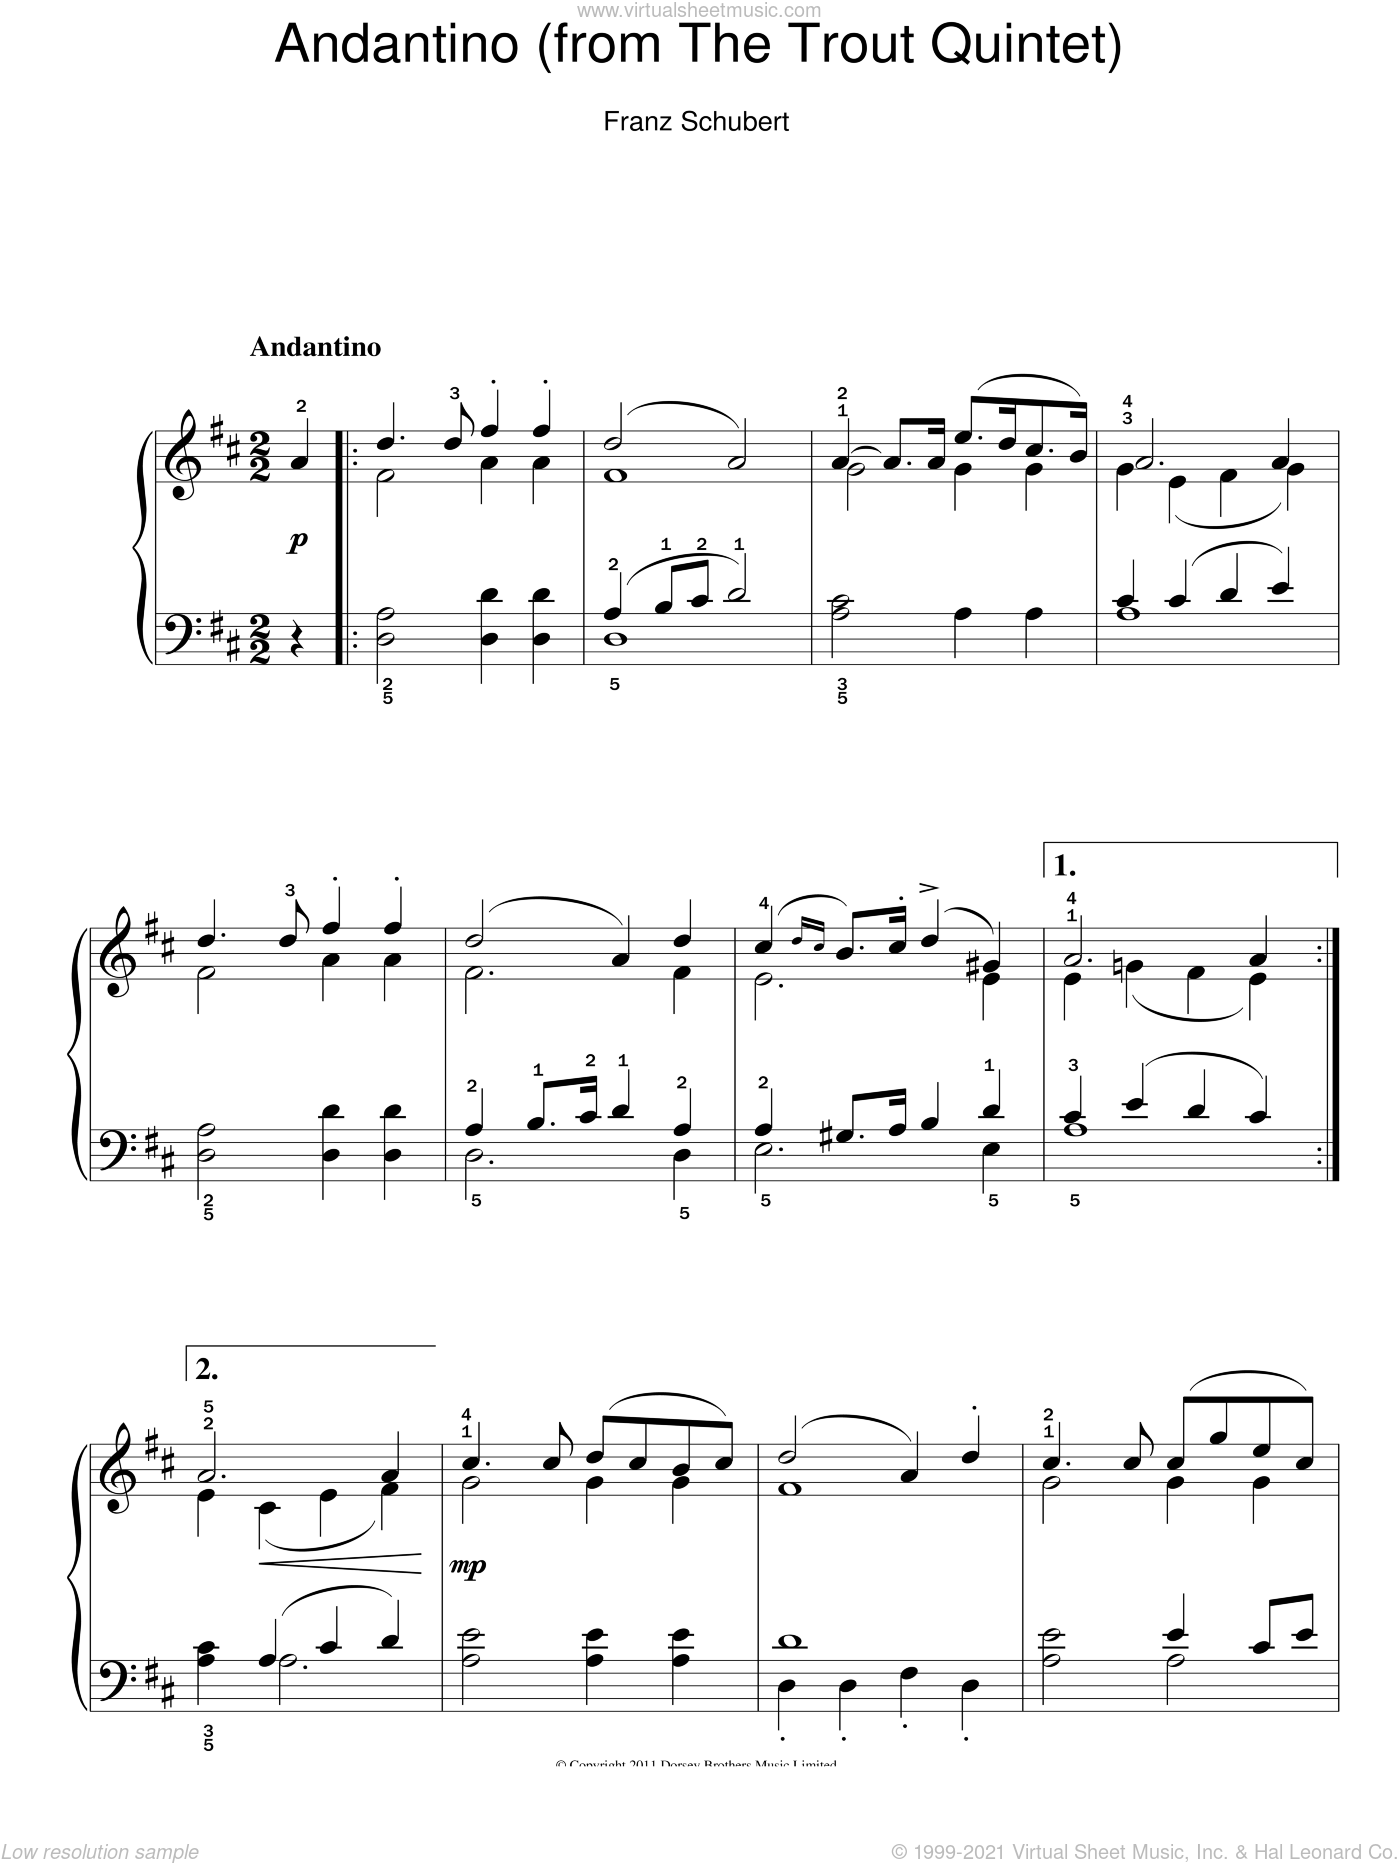 Theme From The Trout Quintet (Die Forelle) sheet music for piano solo by Franz Schubert, classical score, easy skill level